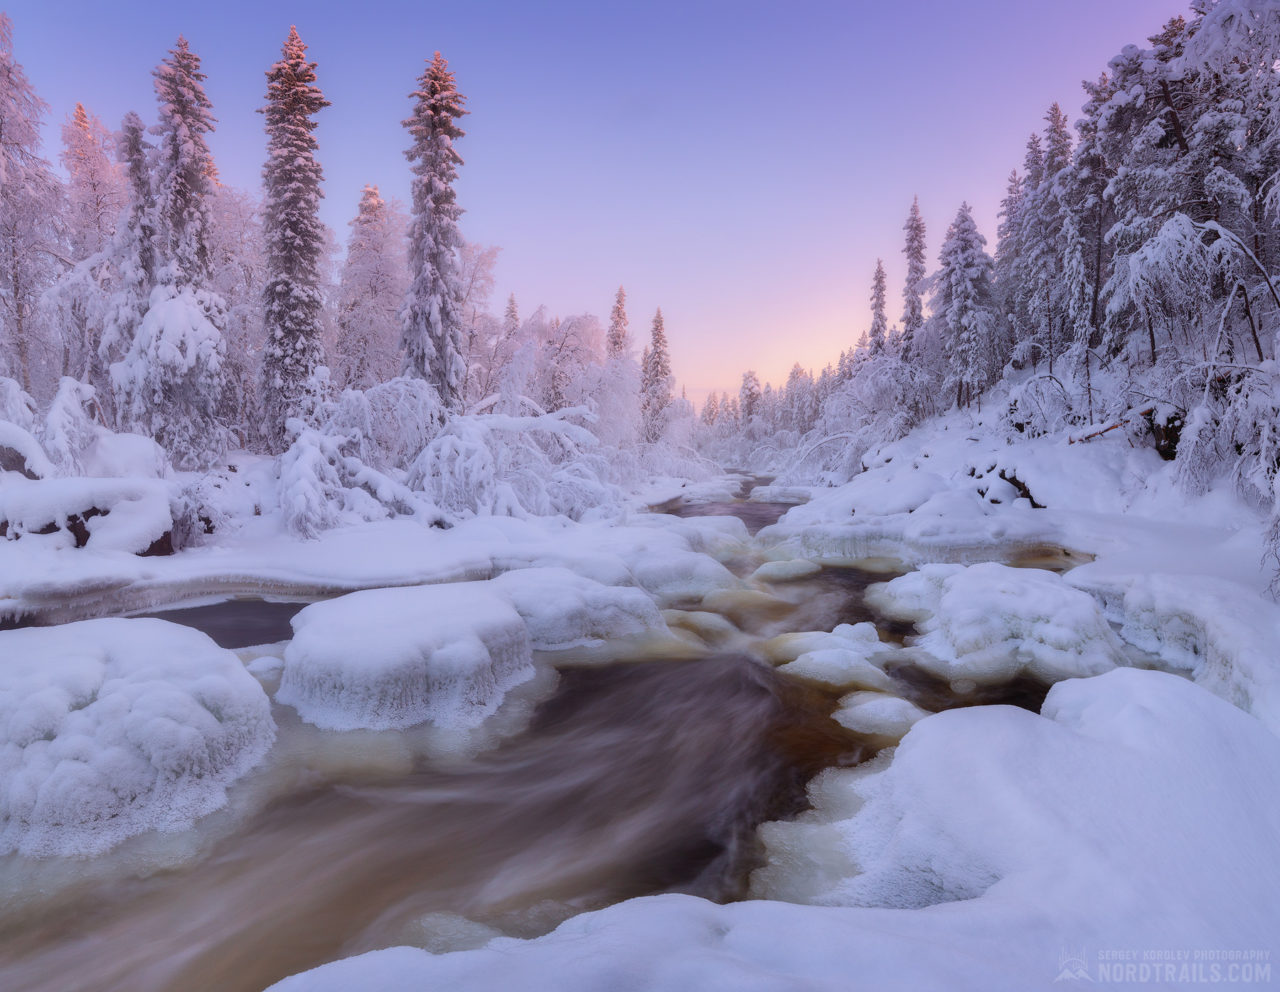 Winter in Kola Peninsula, Russia